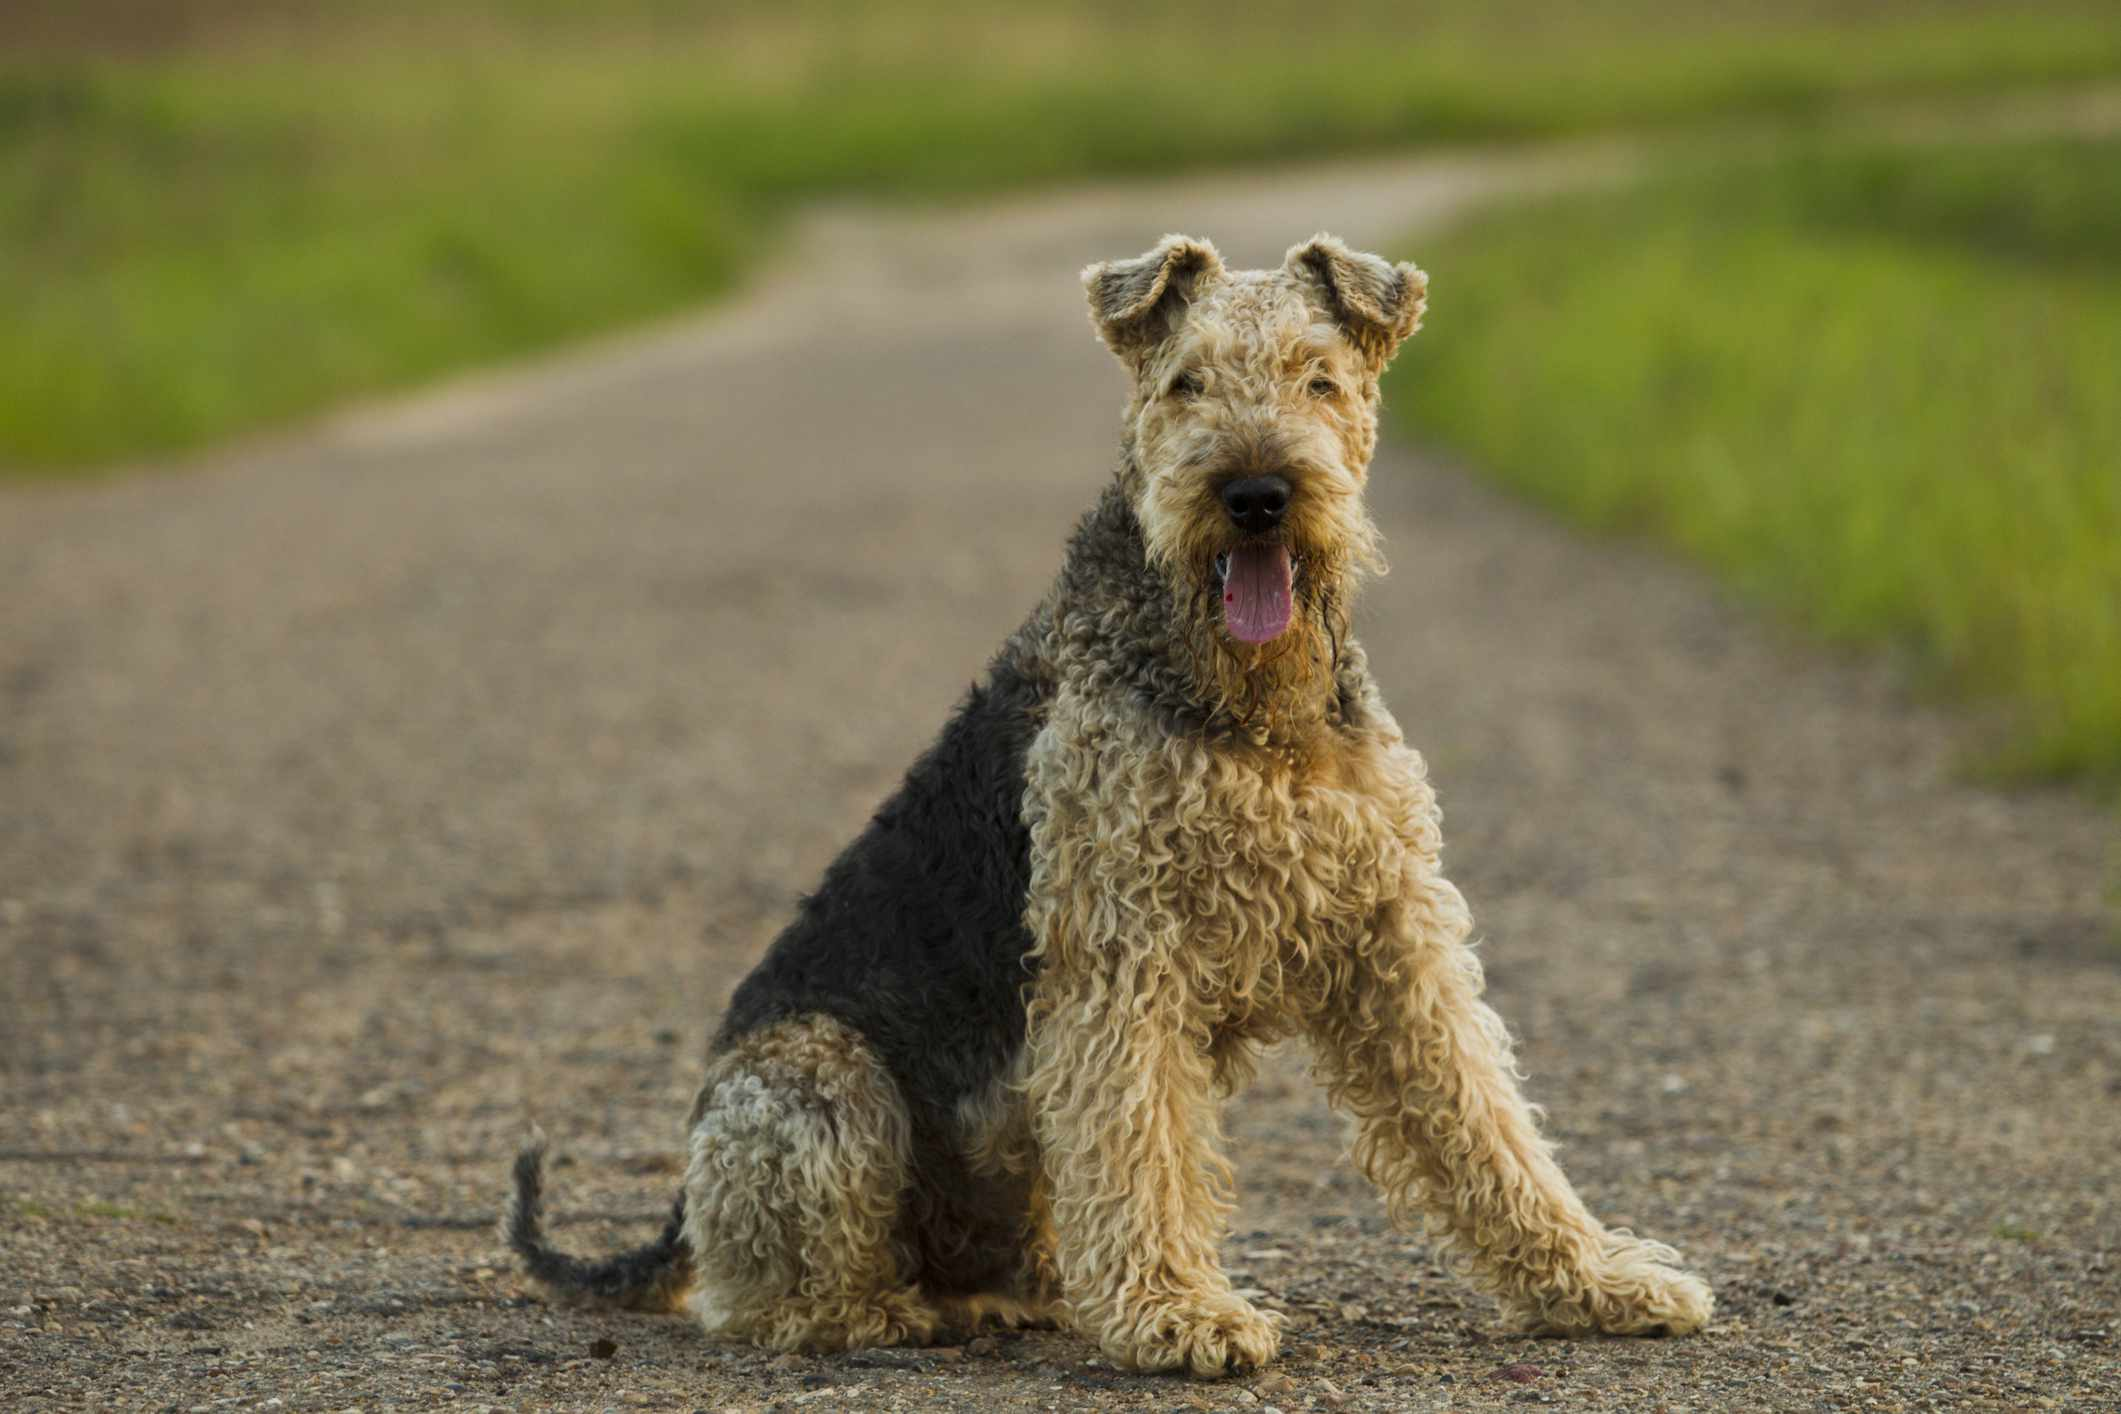 Airedale Terrier stting on a road with grass in the background